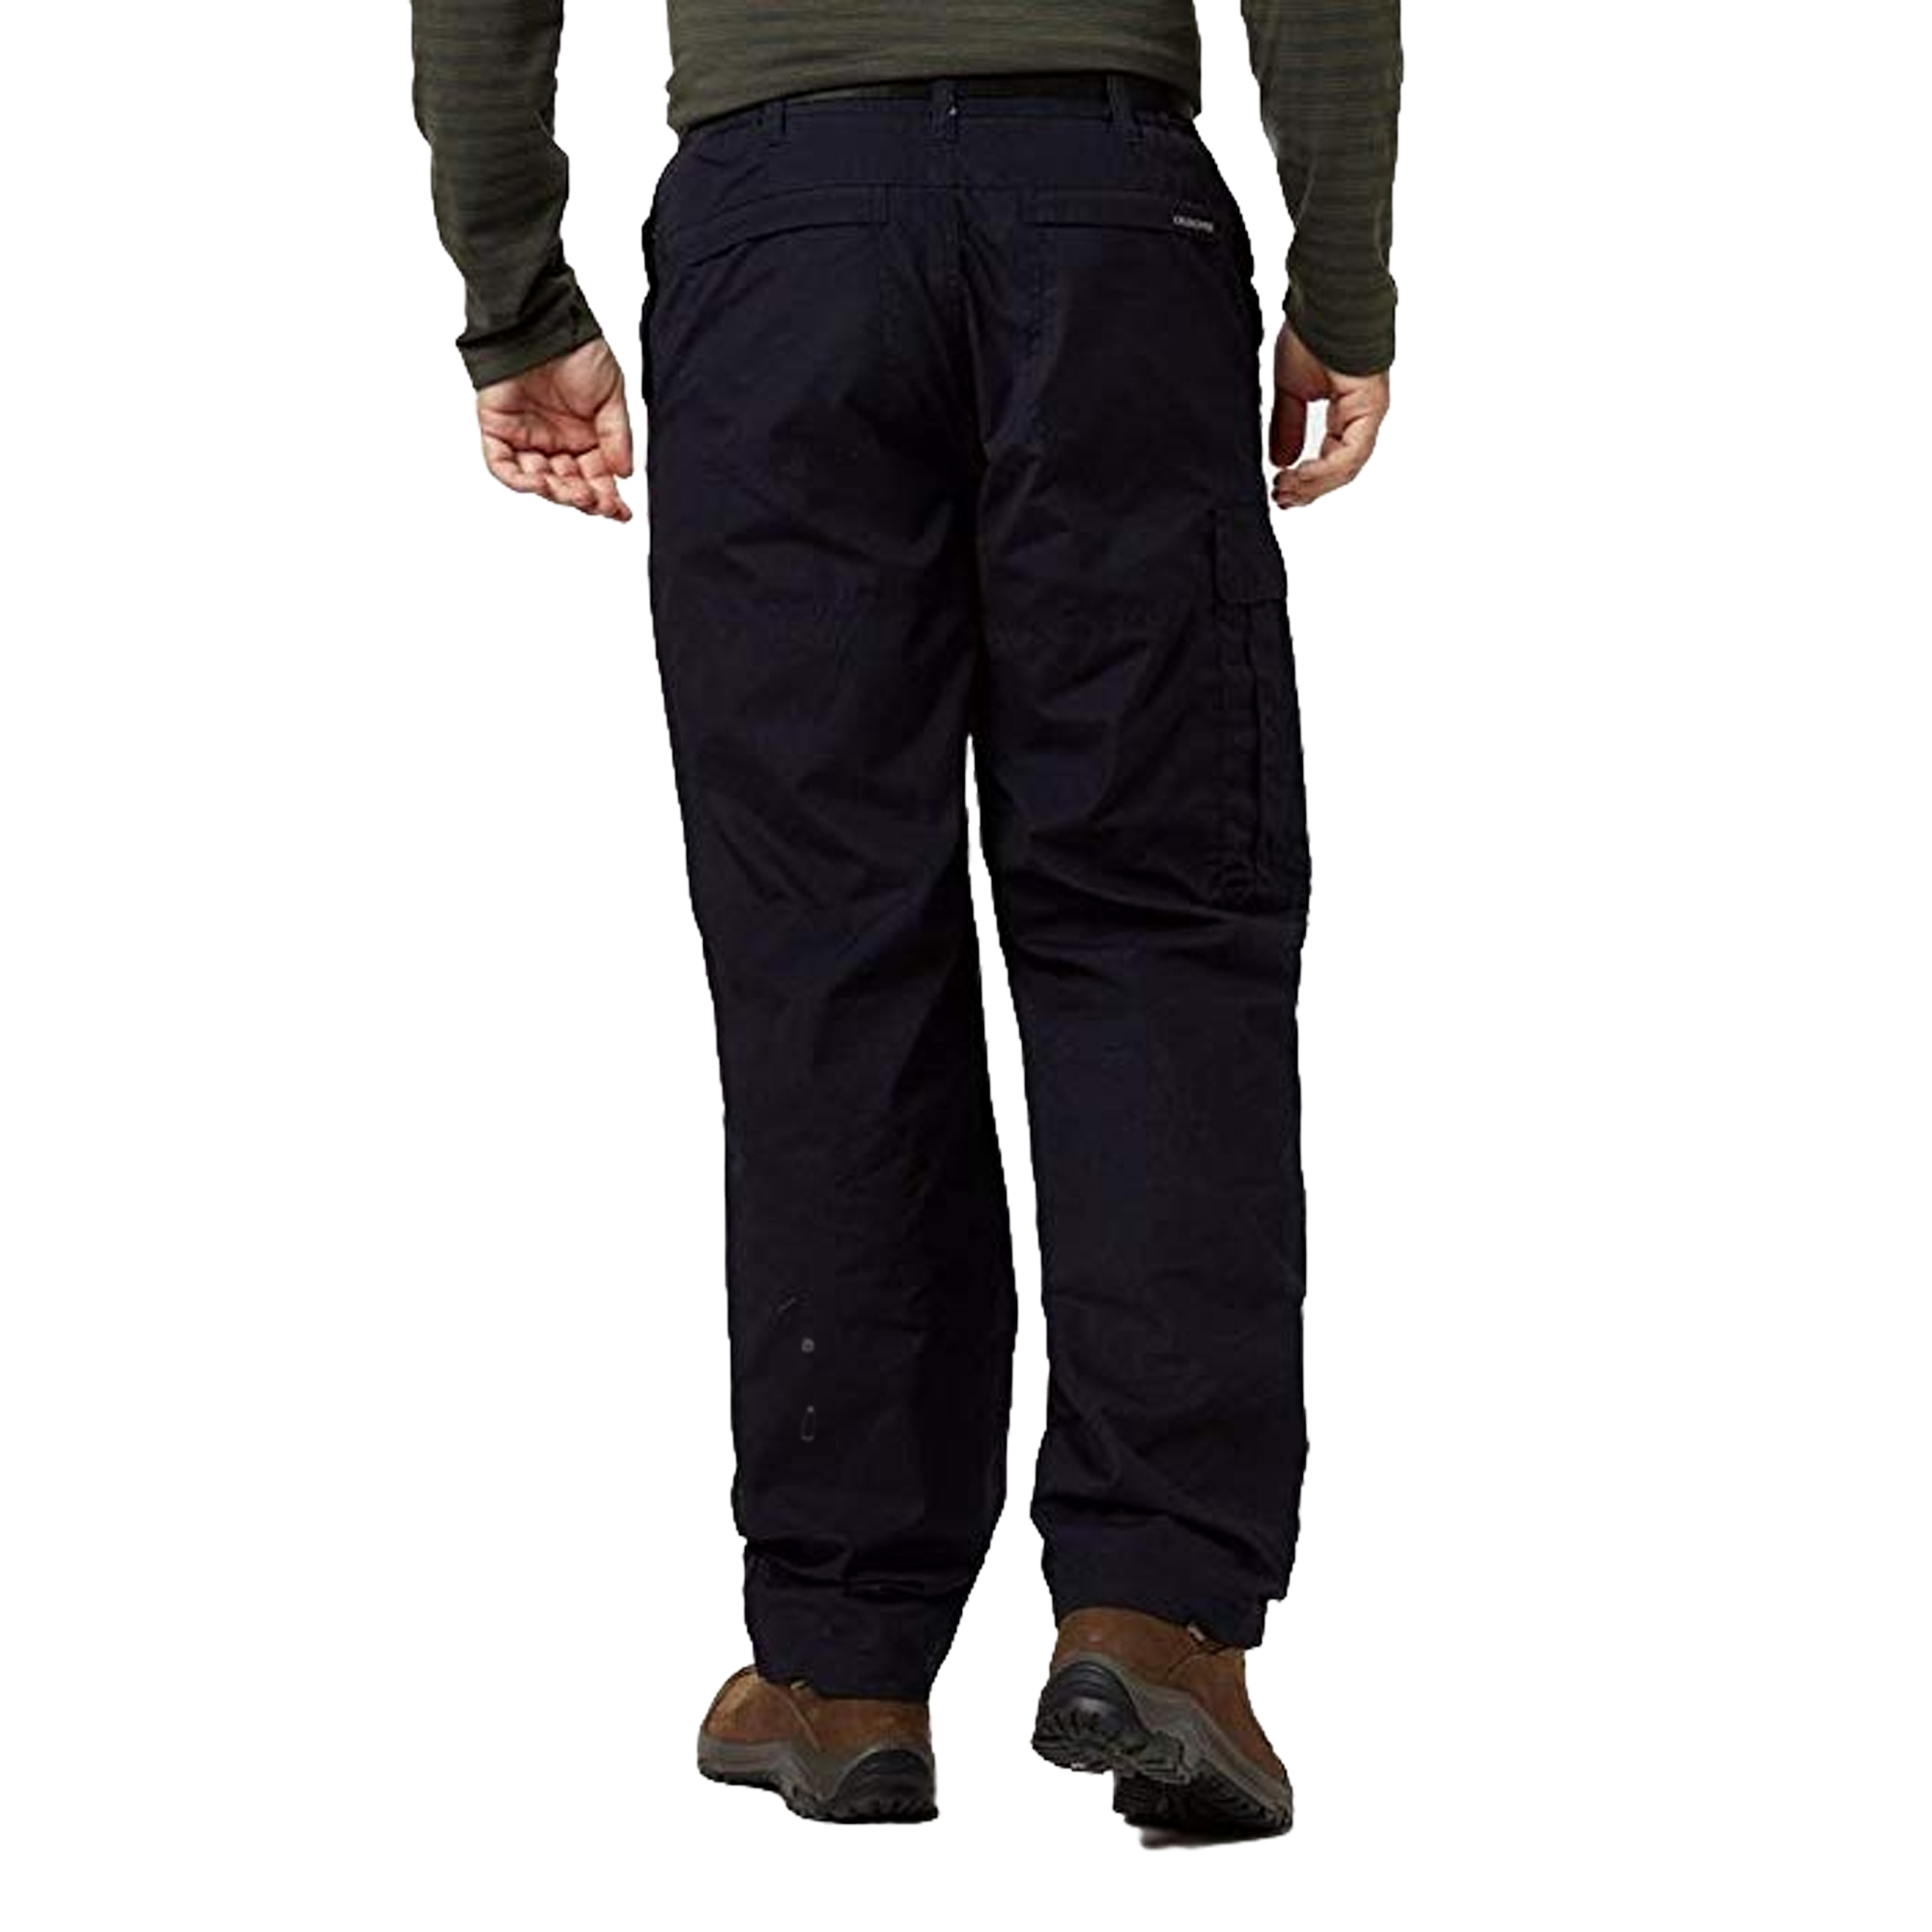 Craghoppers-Mens-Classic-Kiwi-Walking-Hiking-Golf-Outdoor-Trousers-RRP-50 thumbnail 12